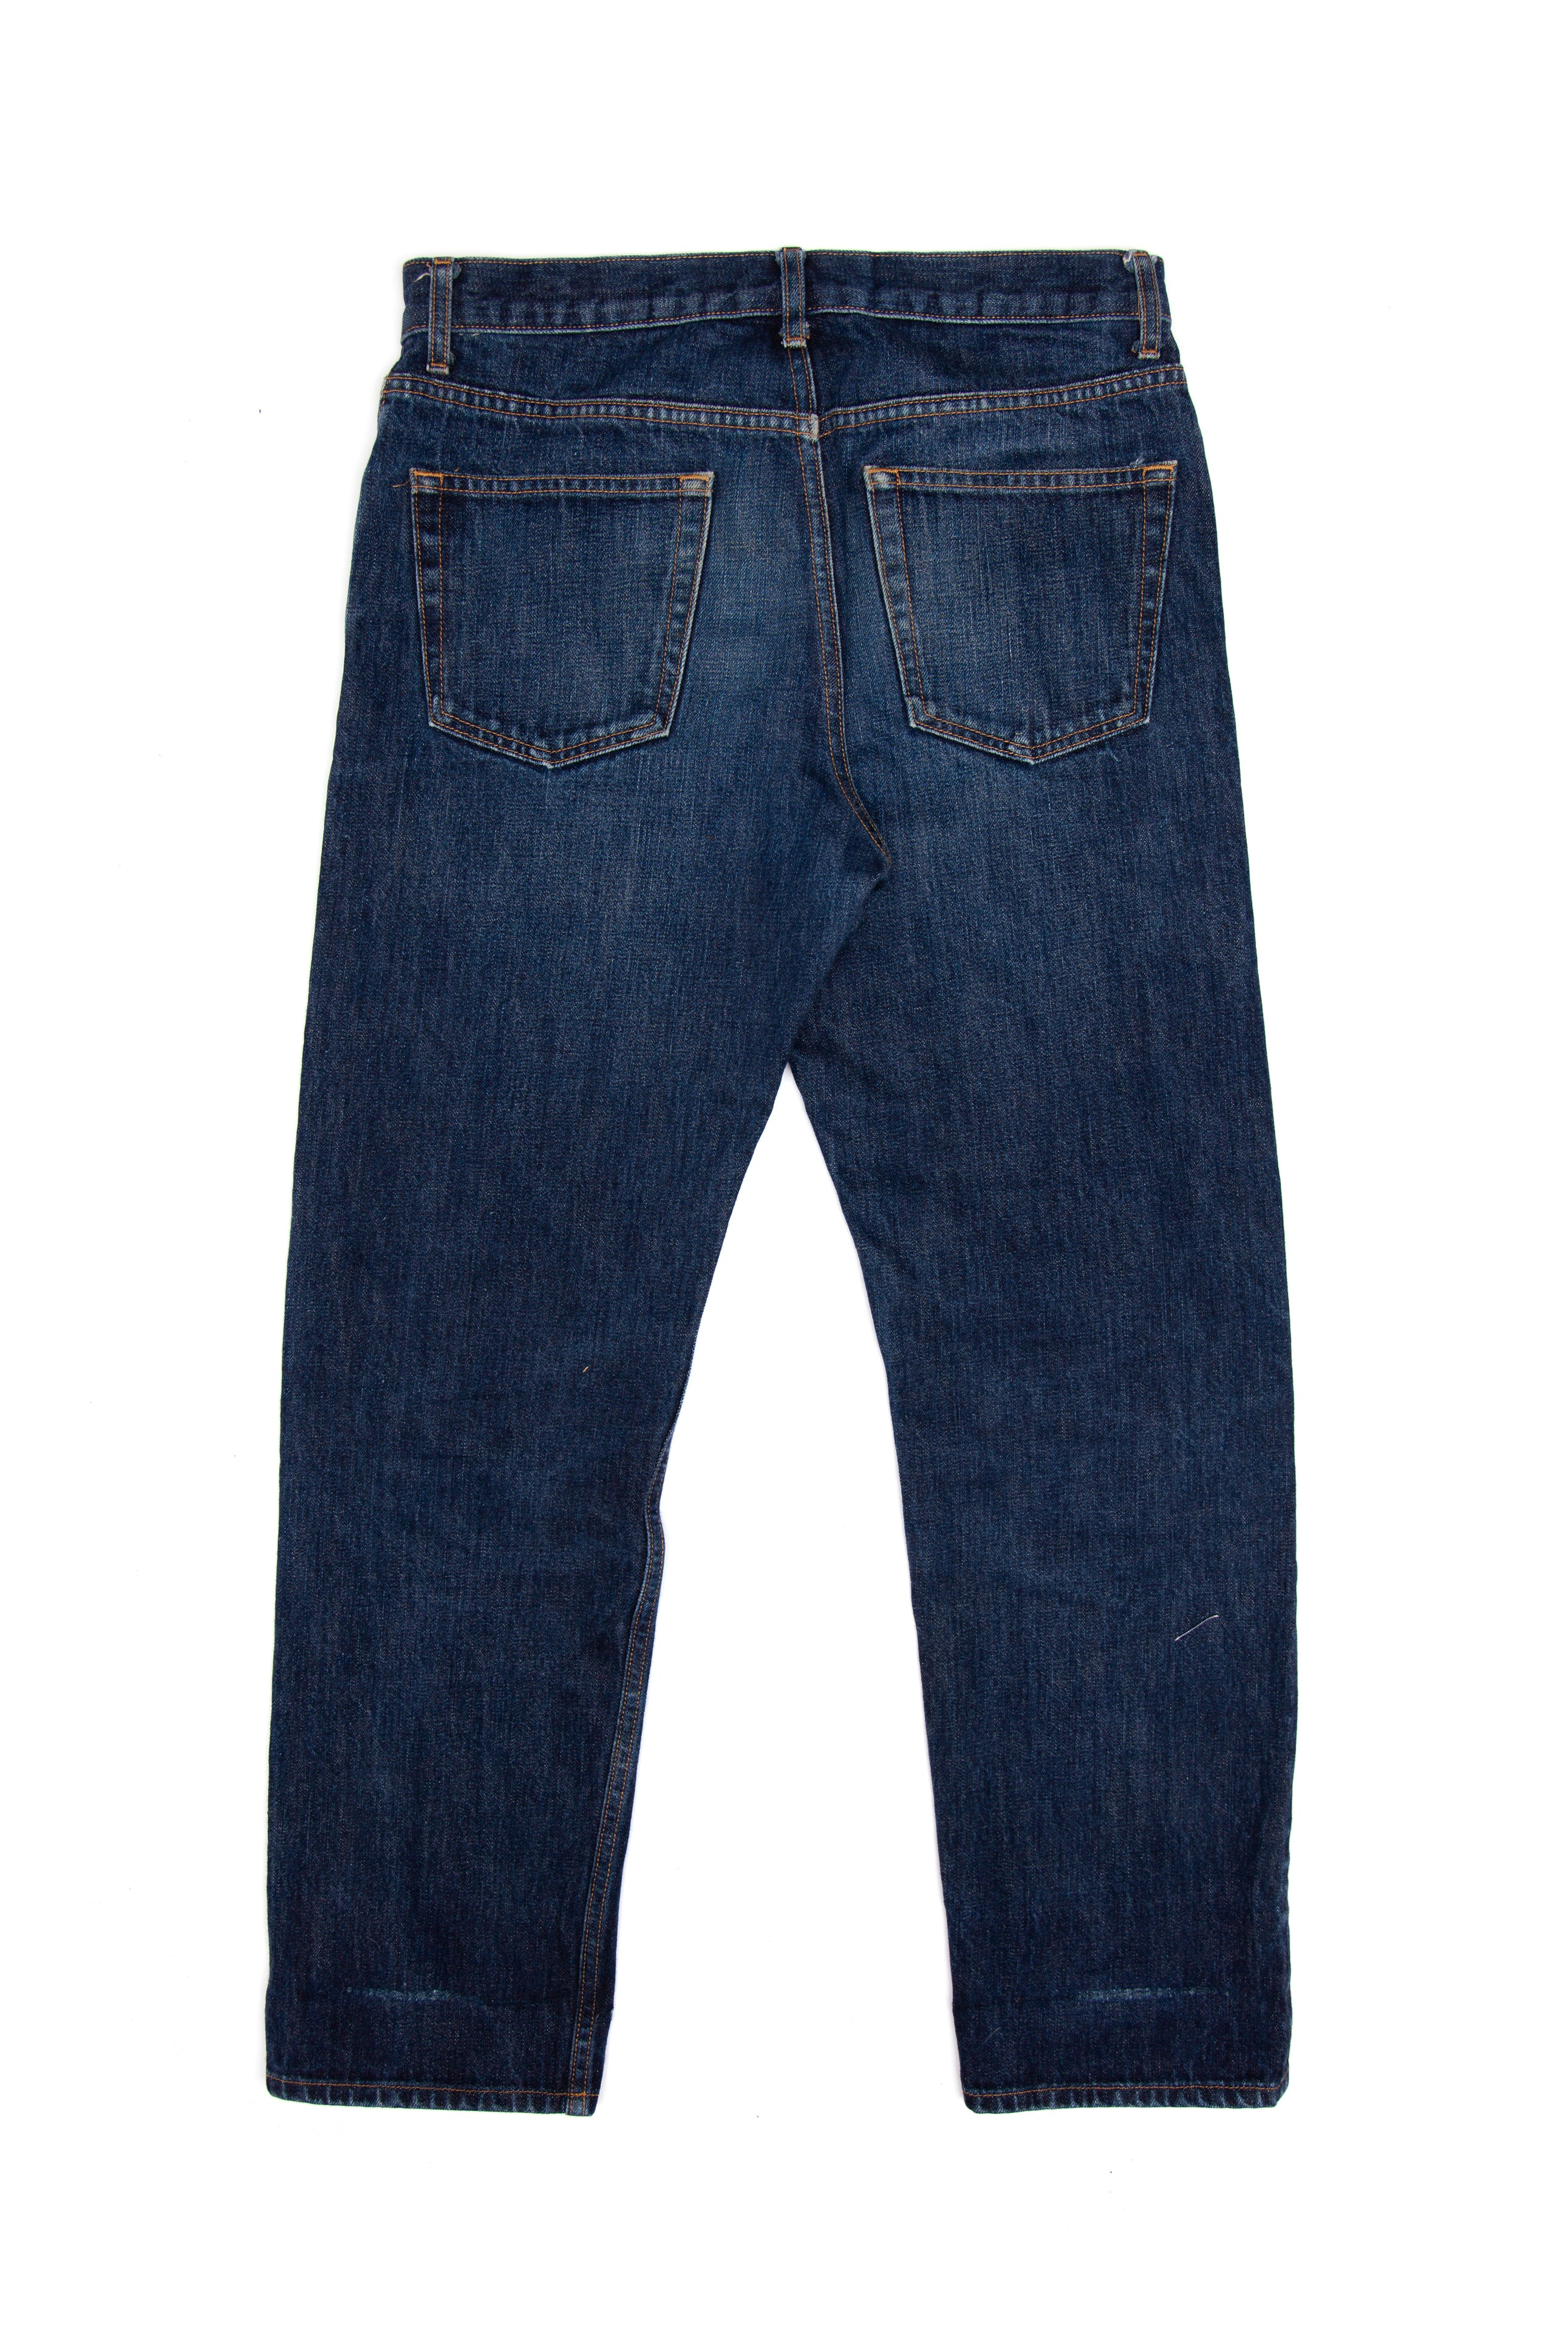 14 oz Selvedge Denim - Raw Indigo